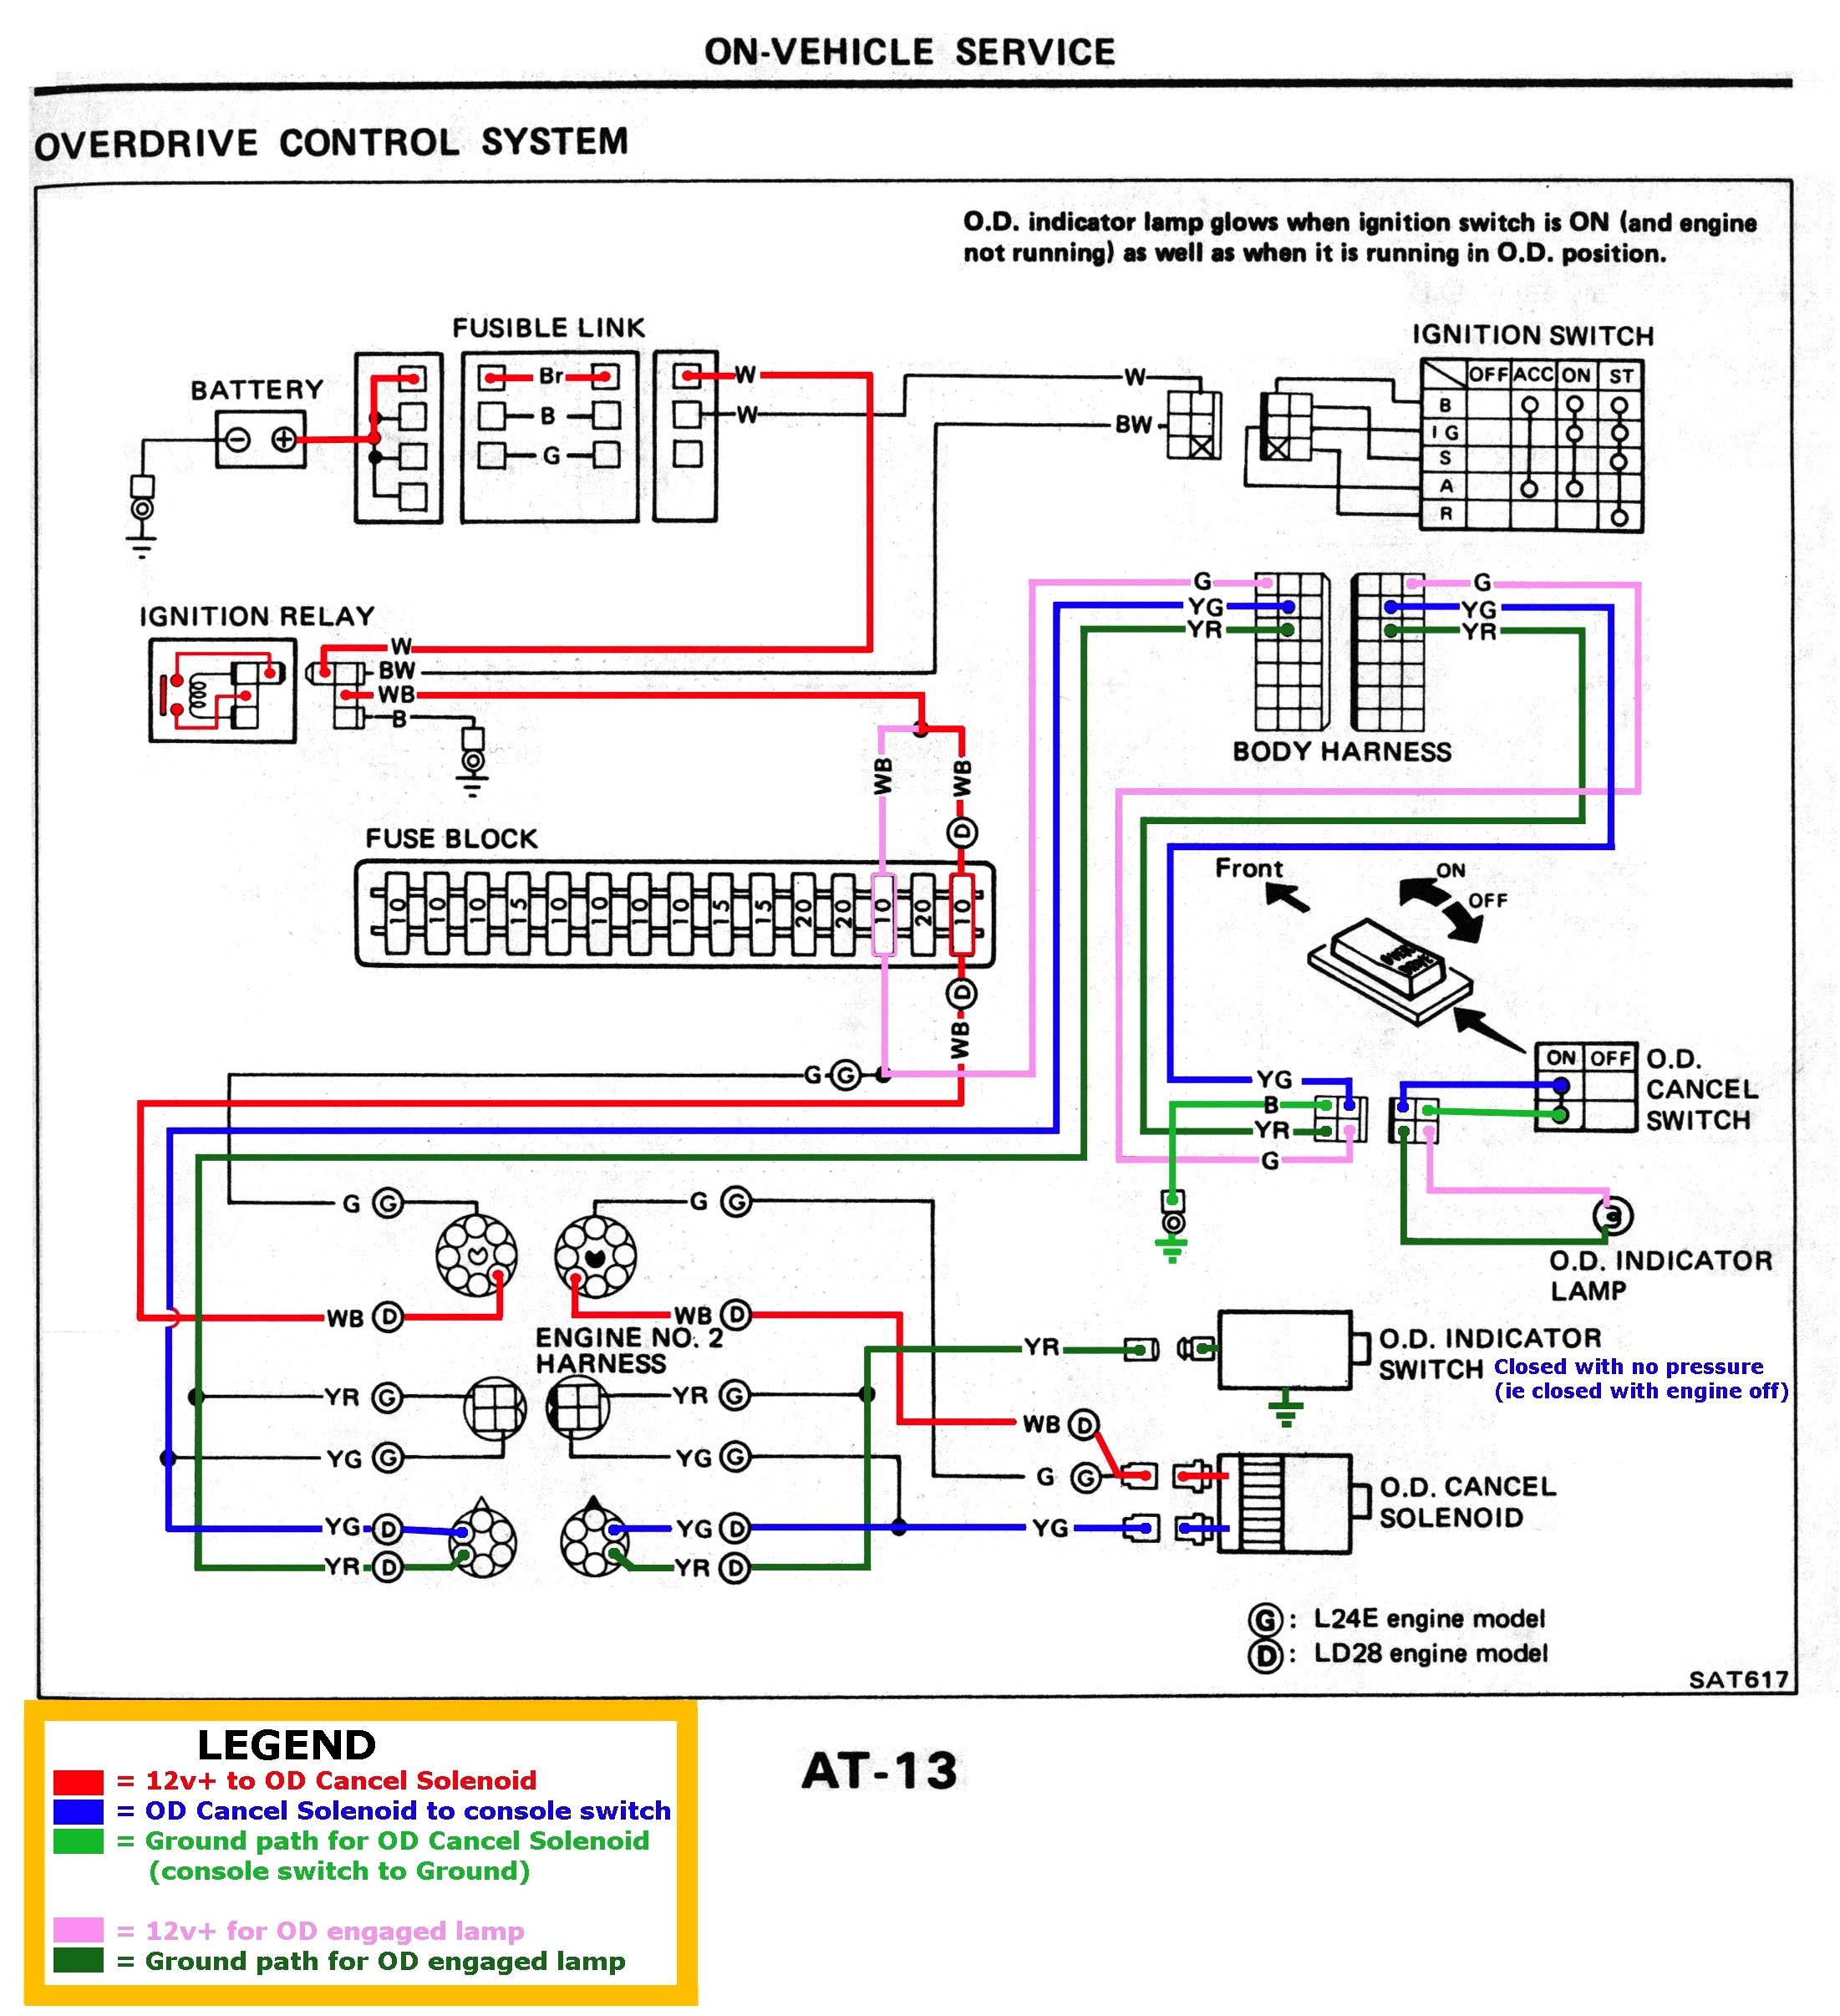 2007 toyota Tundra Wiring Diagram Split Unit Wiring Diagram Of 2007 toyota  Tundra Wiring Diagram 2018